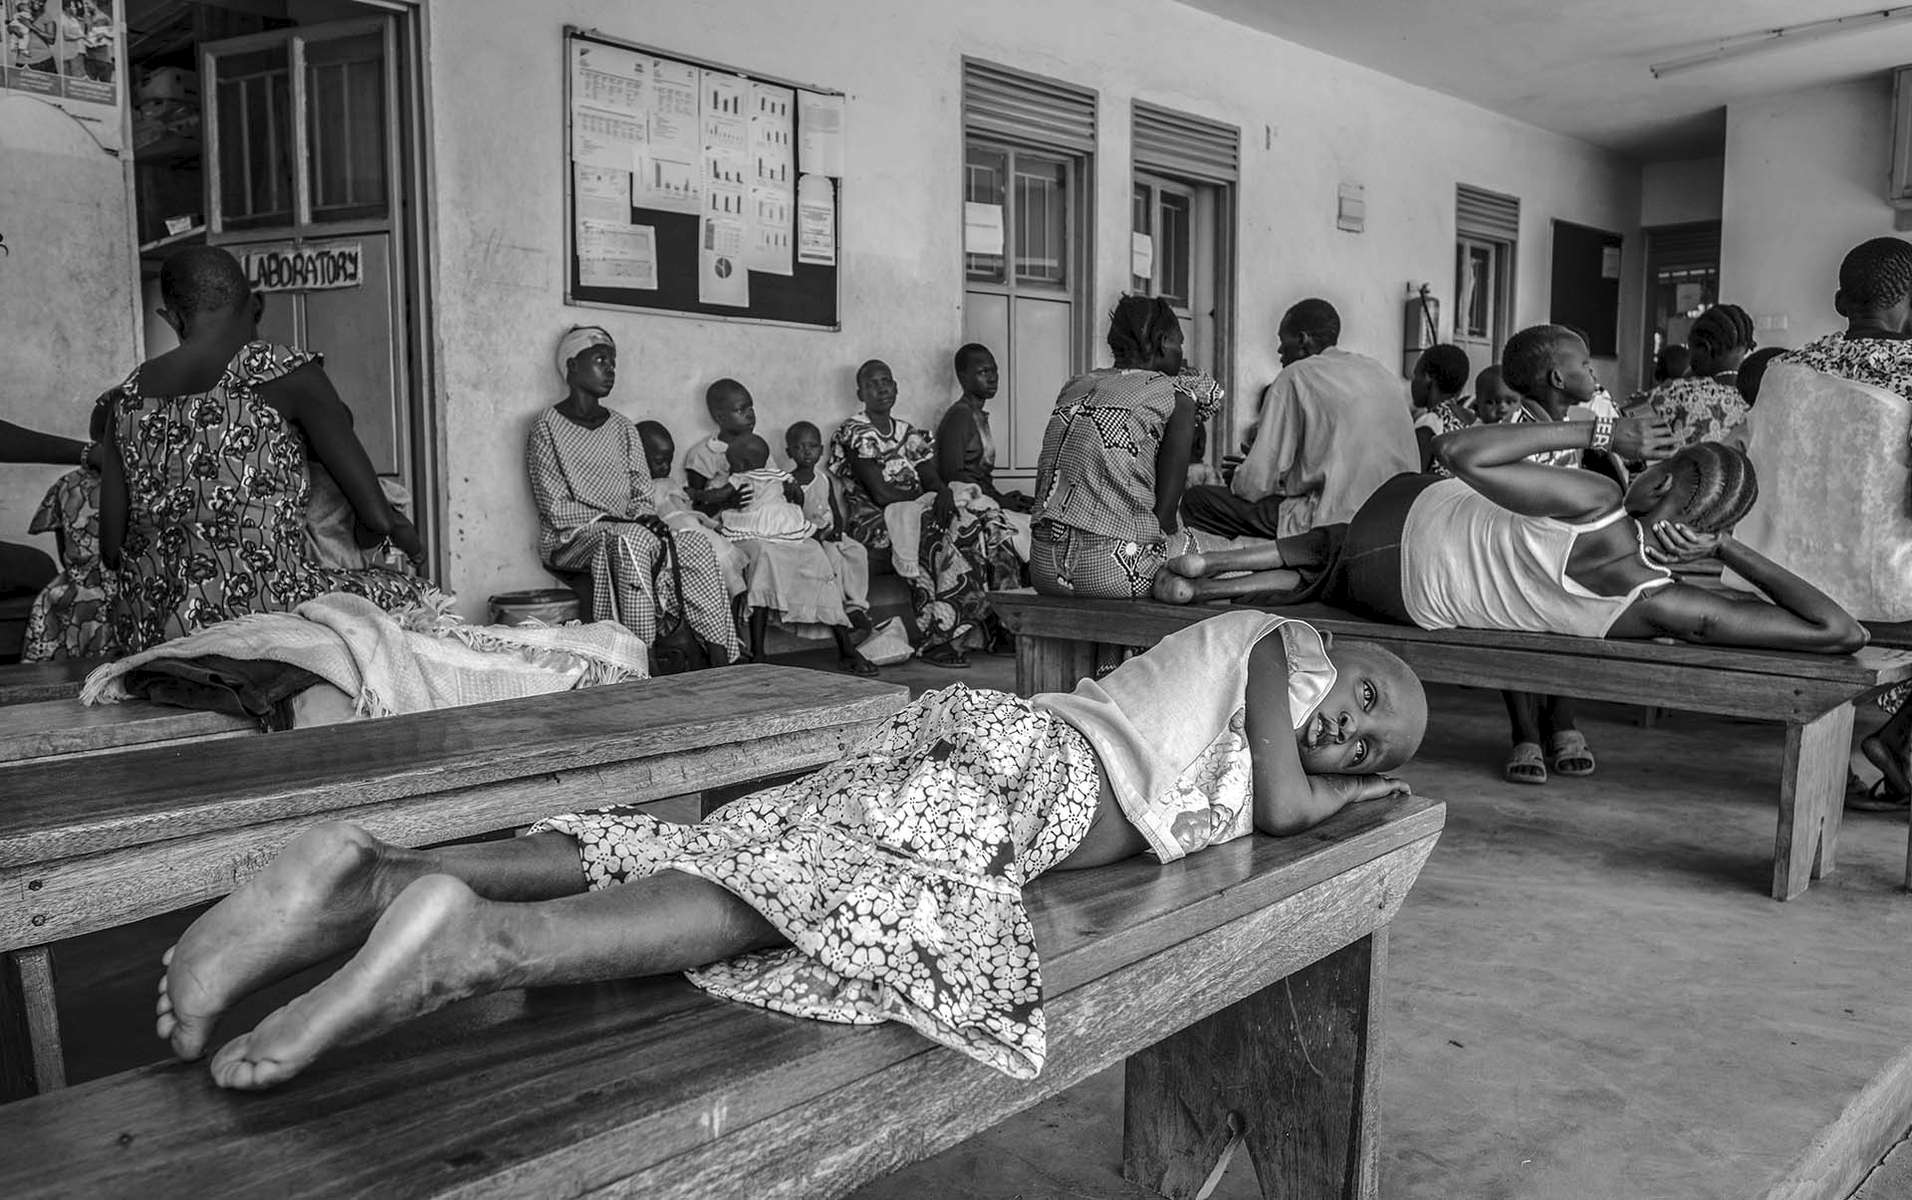 South Sudanese refugees wait for service at a health center in Nyumanzi refugee settlement in Adjumani District of Northern Uganda 3 May 2017. © Jiro Ose